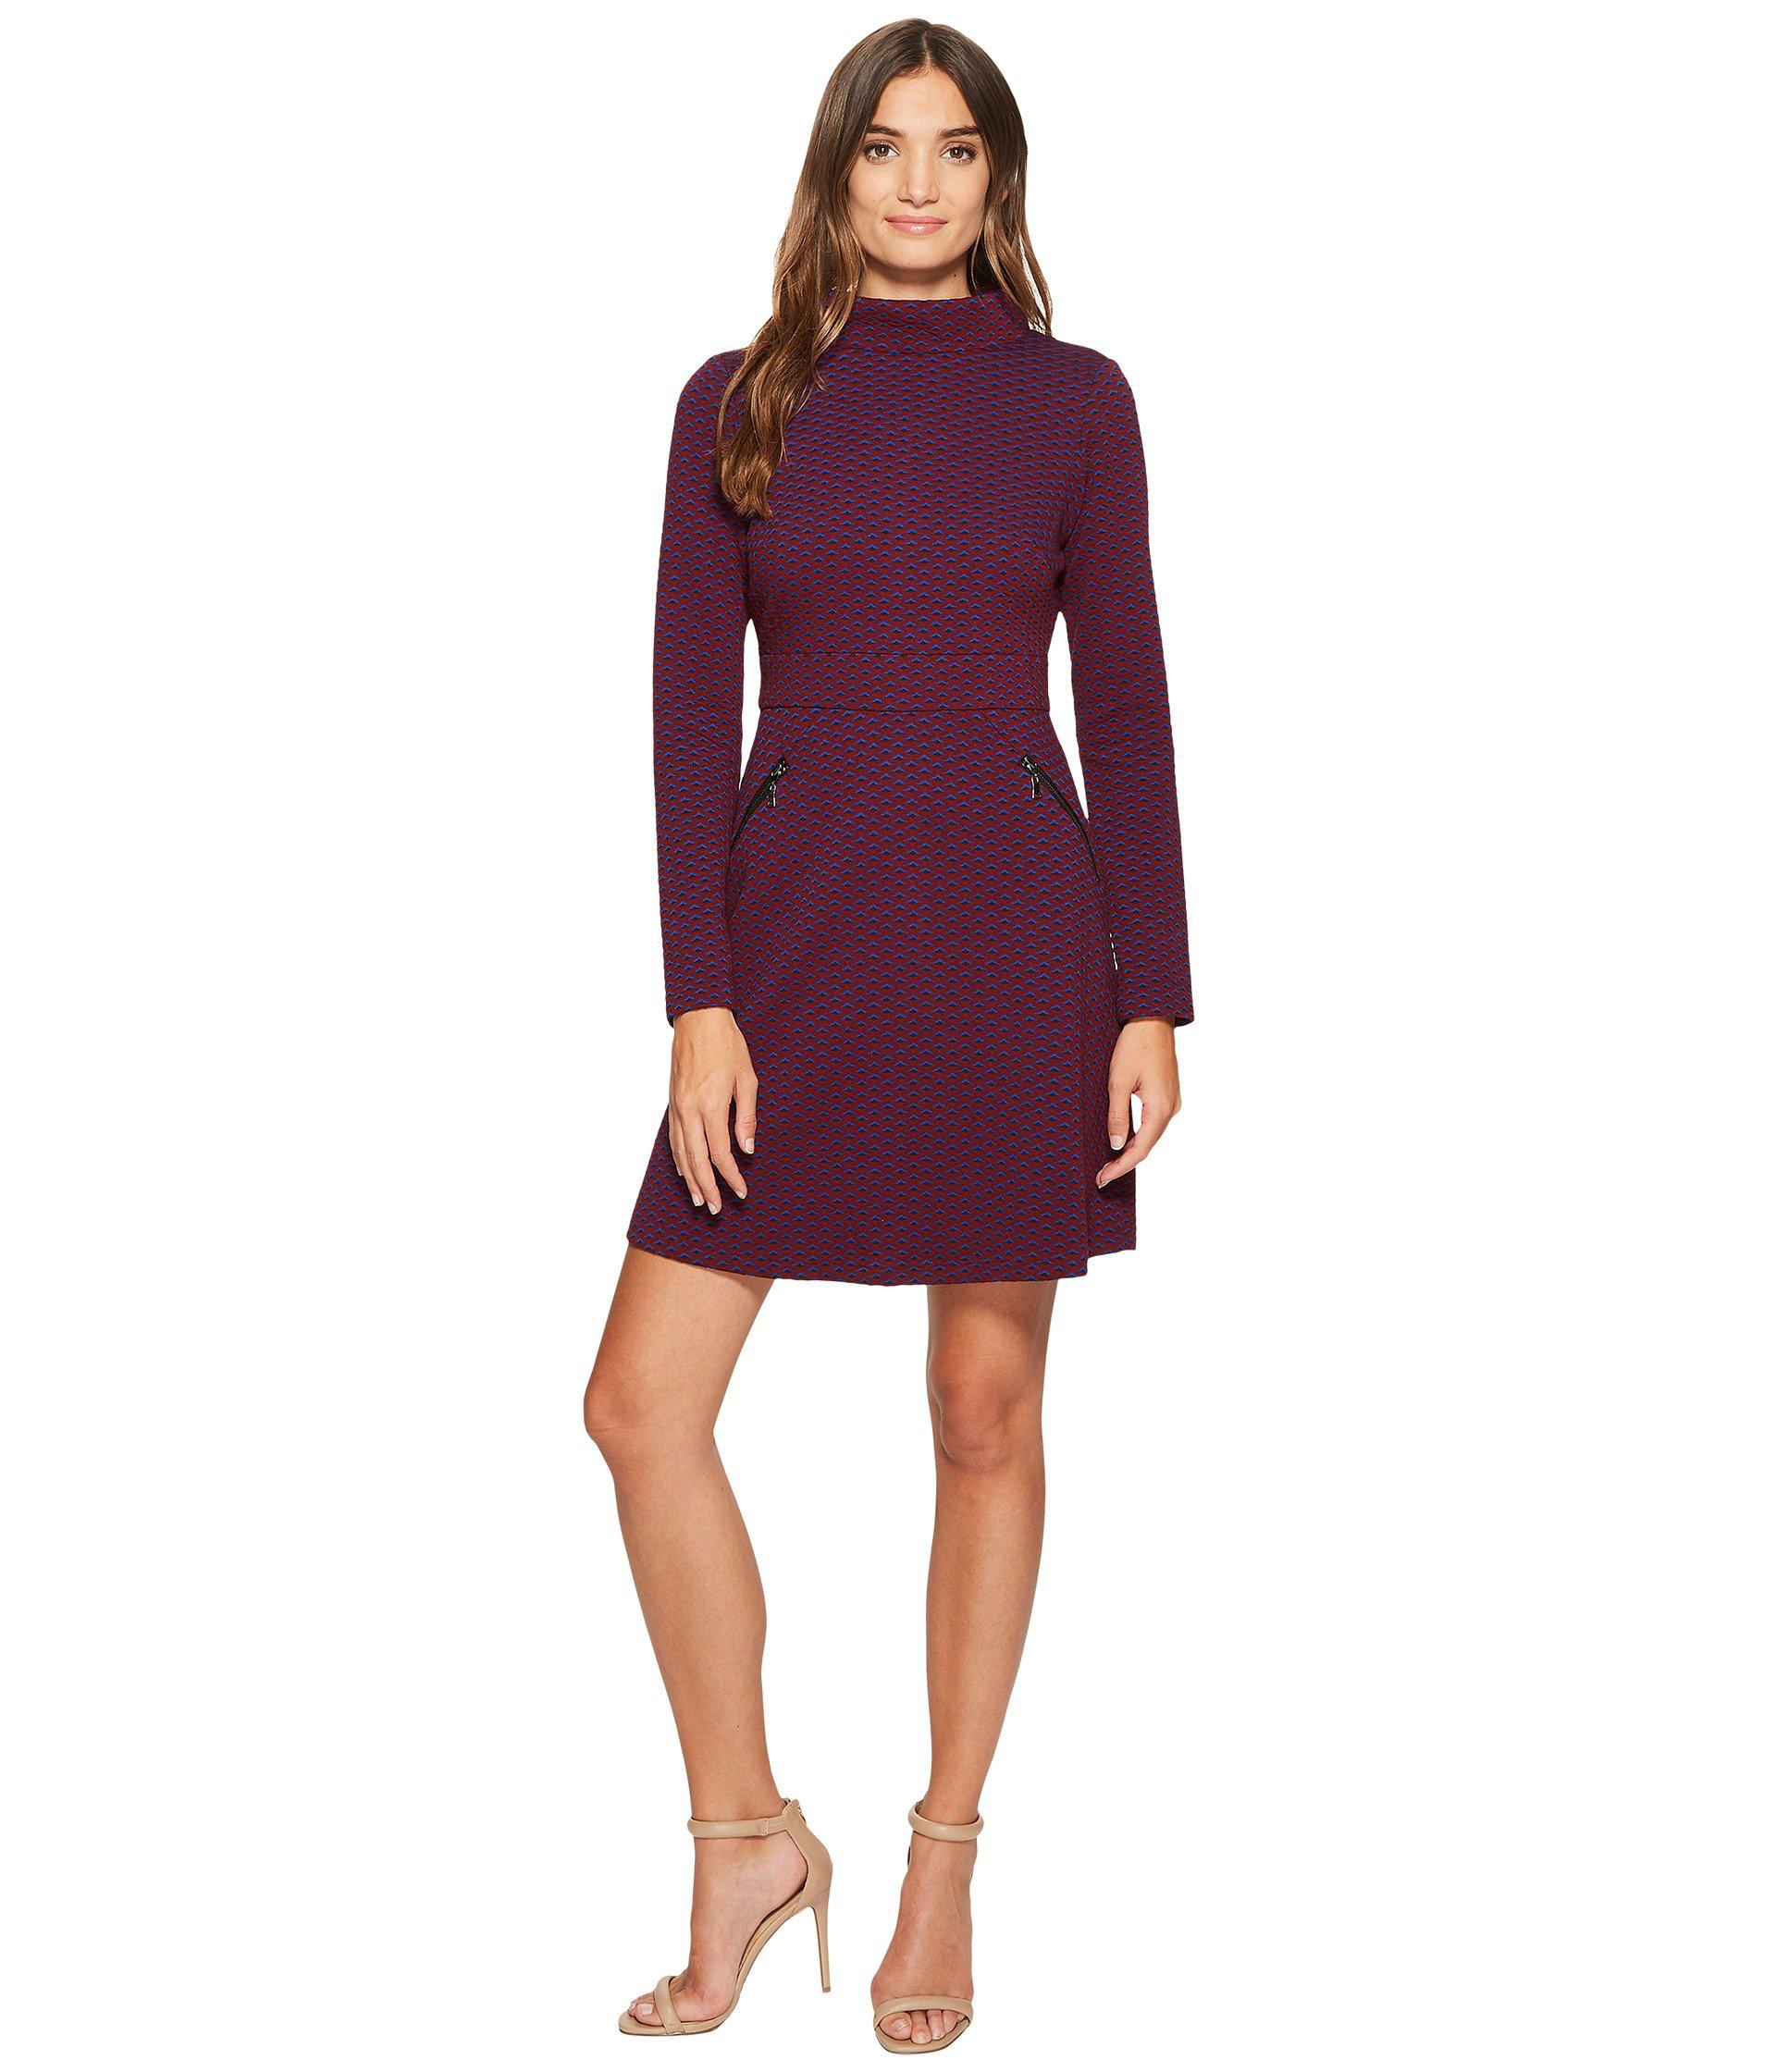 690686aab7a3 Lyst - Maggy London Retro Jacquard Fit   Flare Dress in Purple